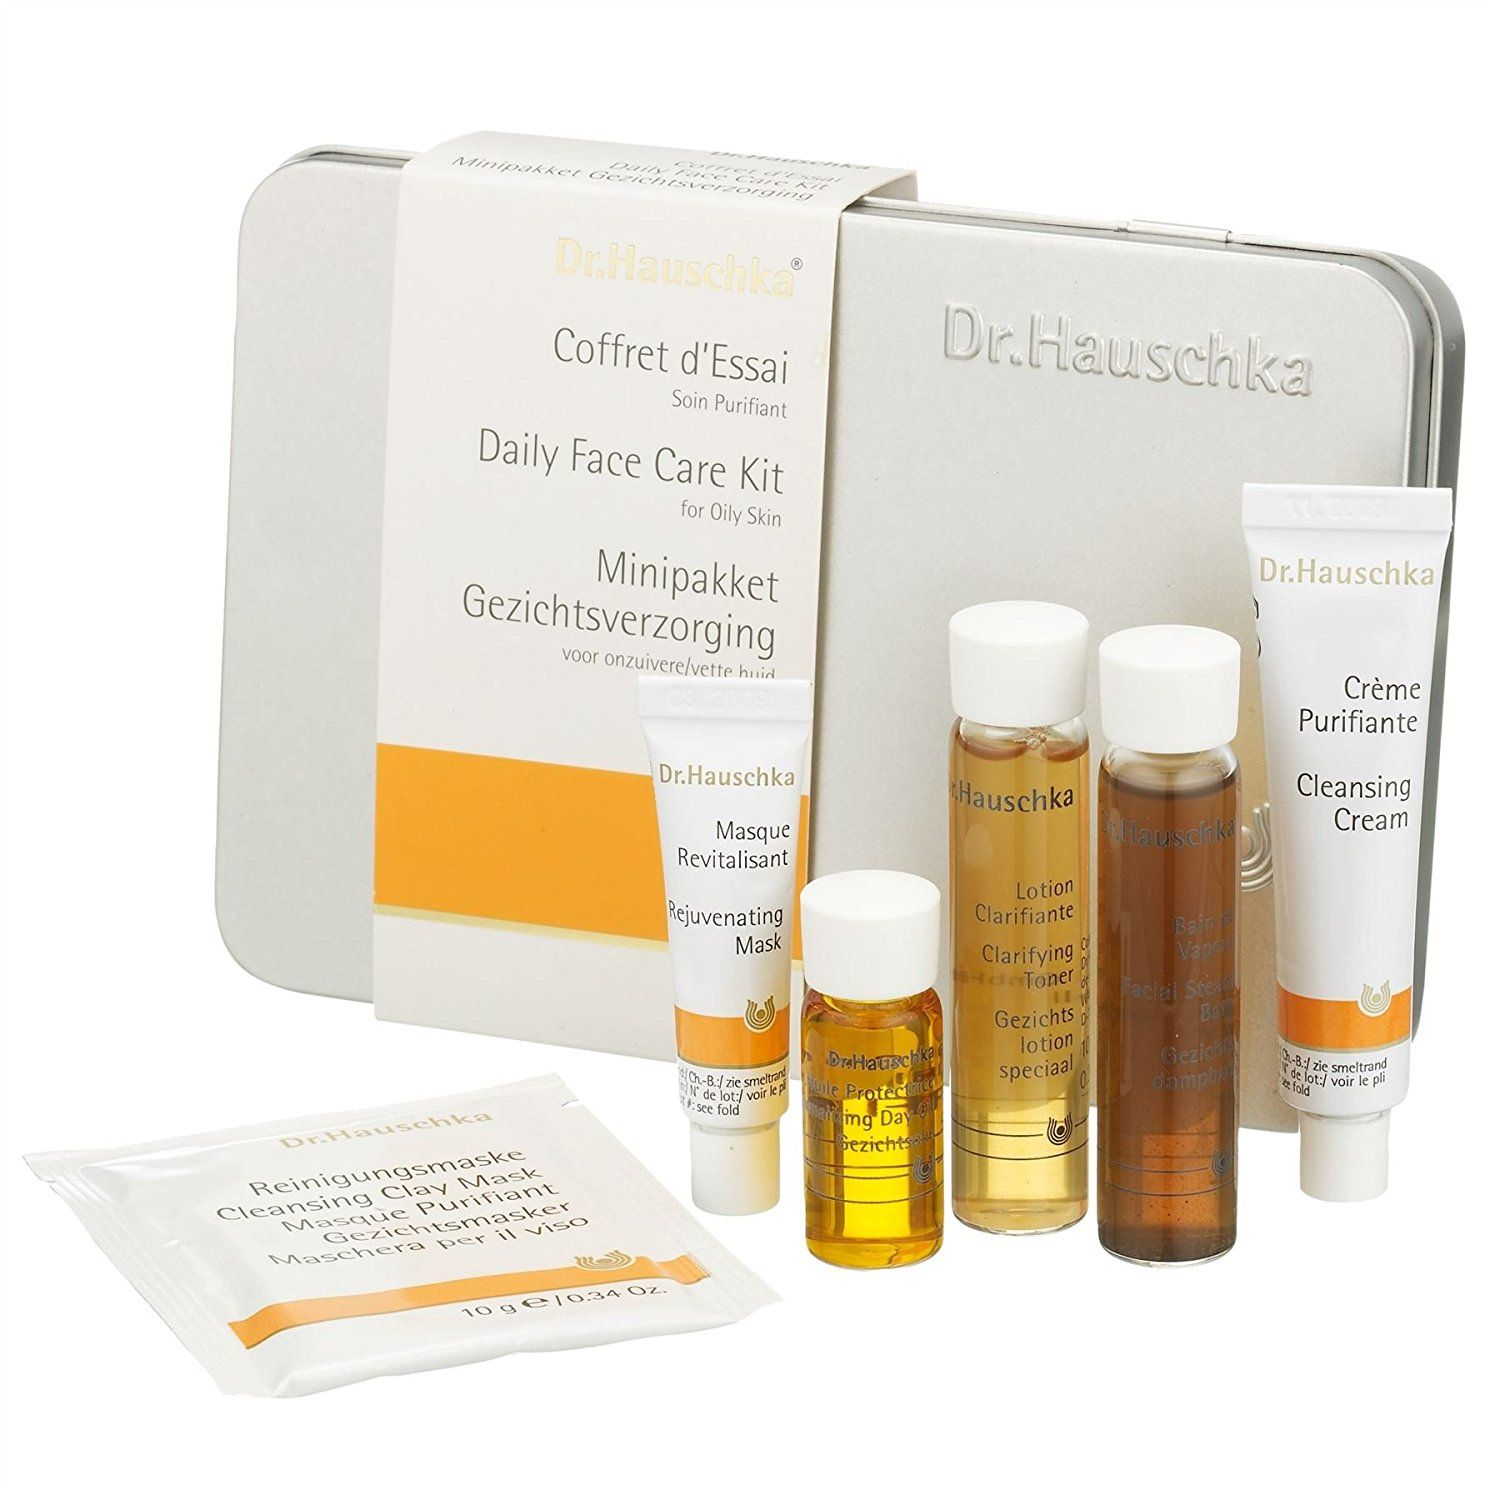 Dr Hauschka Daily Face Care Kit Oily Skin (PACK OF 6) Dr.Hauschka's Daily Face Care Kit for Oily Skin is a great introduction to the range for those  Read more http://cosmeticcastle.net/dr-hauschka-daily-face-care-kit-oily-skin-pack-of-6/  Visit http://cosmeticcastle.net to read cosmetic reviews